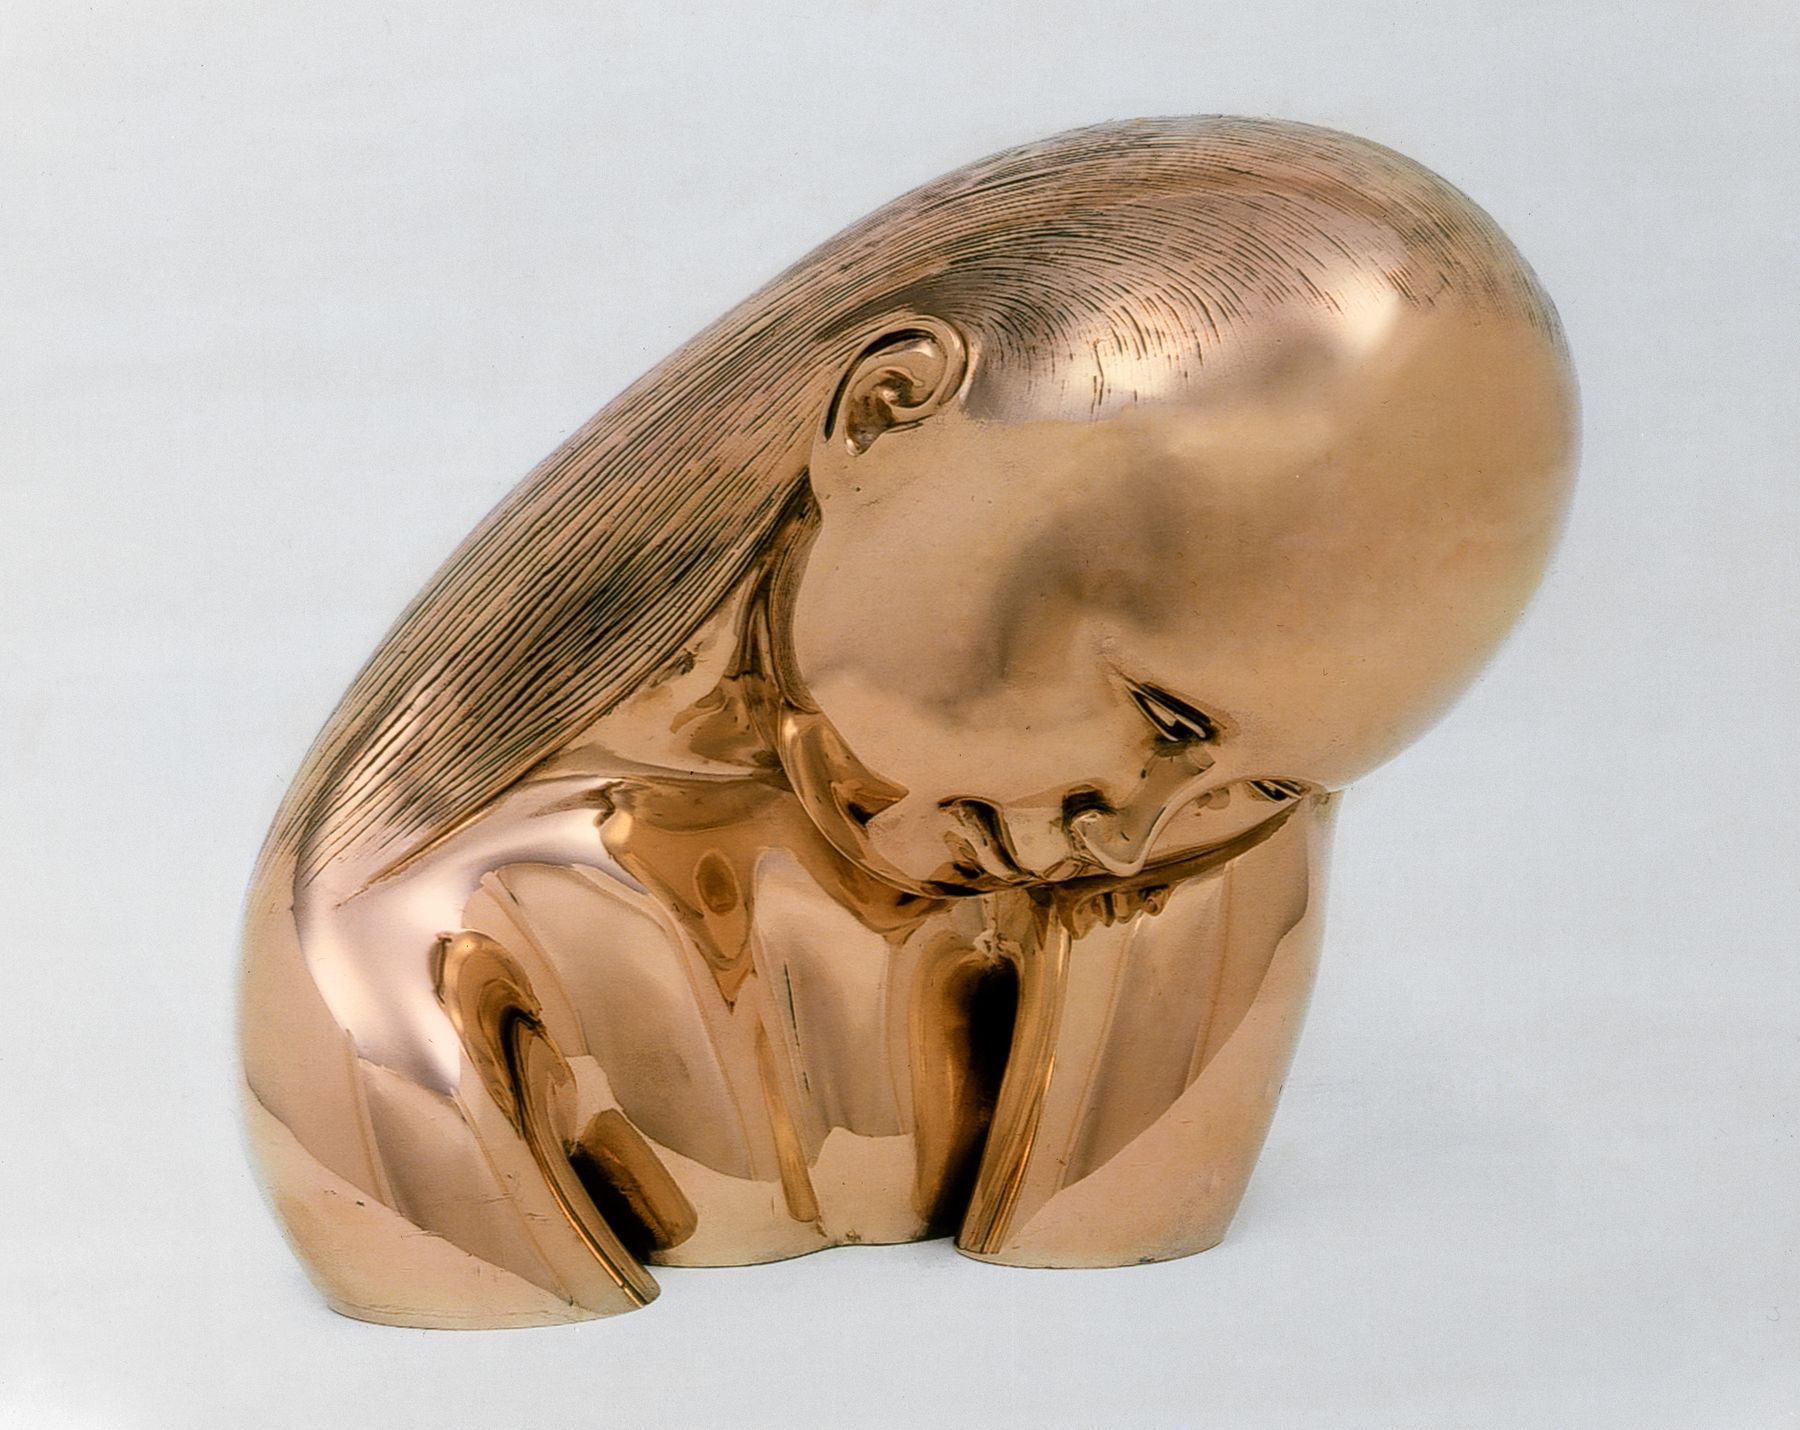 Hugo Robus, Shy (Adolescent Girl), c.1951, polished bronze, 11 x 13 x 9 inches, Edition of 2